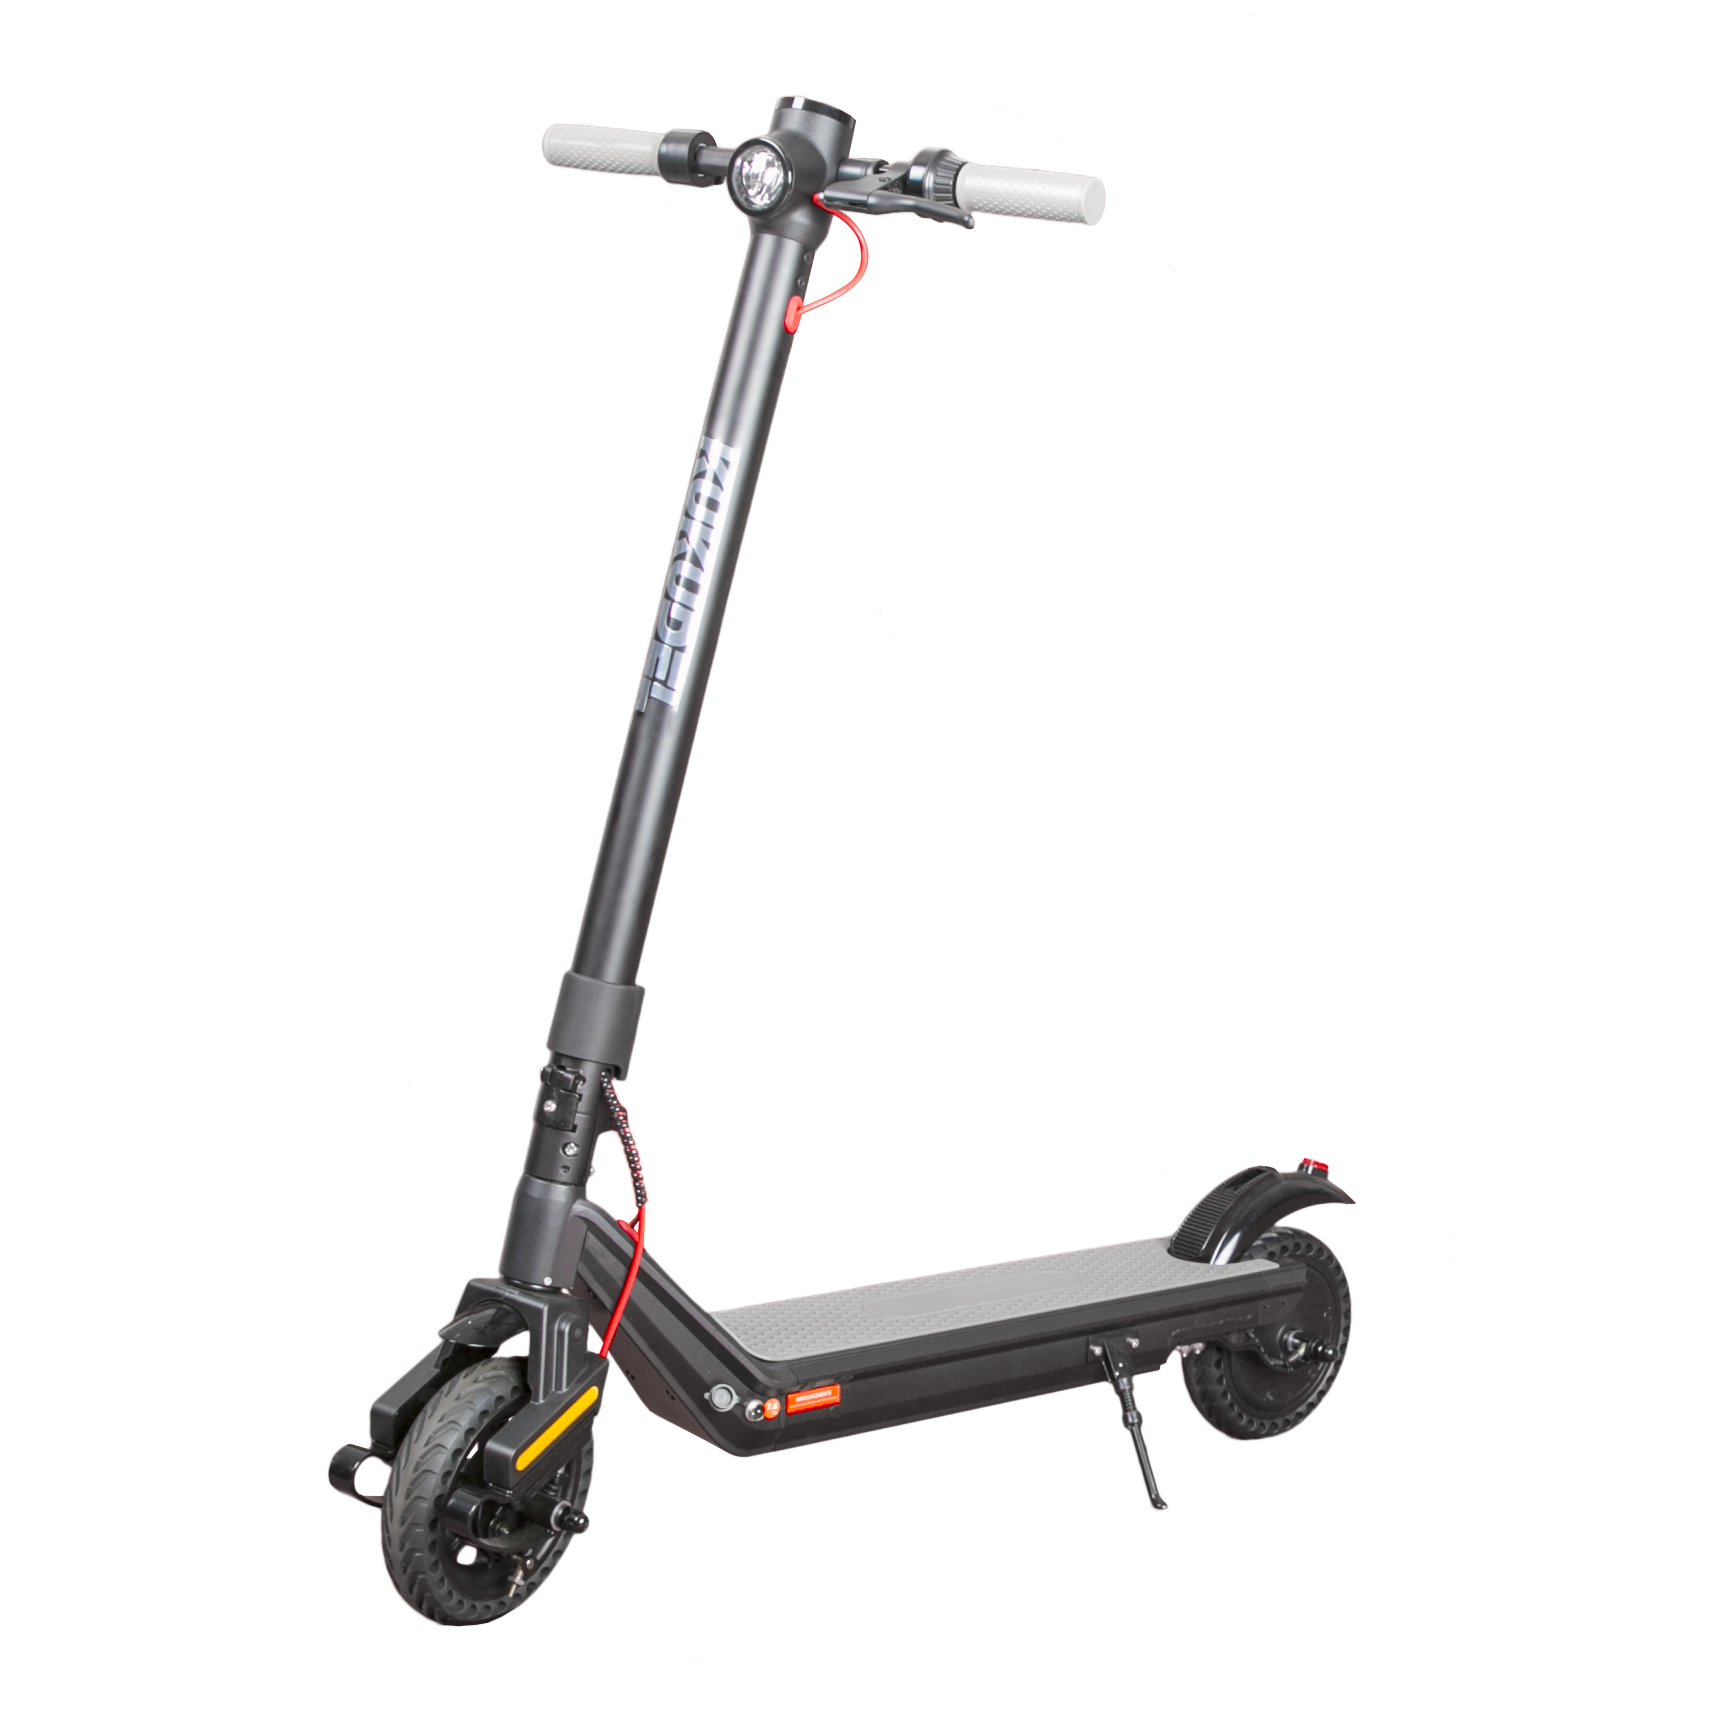 [EU DIRECT] KUKUDEL 856P Electric Scooter 36V 7.5Ah Battery 250W Brushless Motor 25Km/h Max Speed 26-40Km Mileage 100Kg Max Load 8.5Inch Scooter